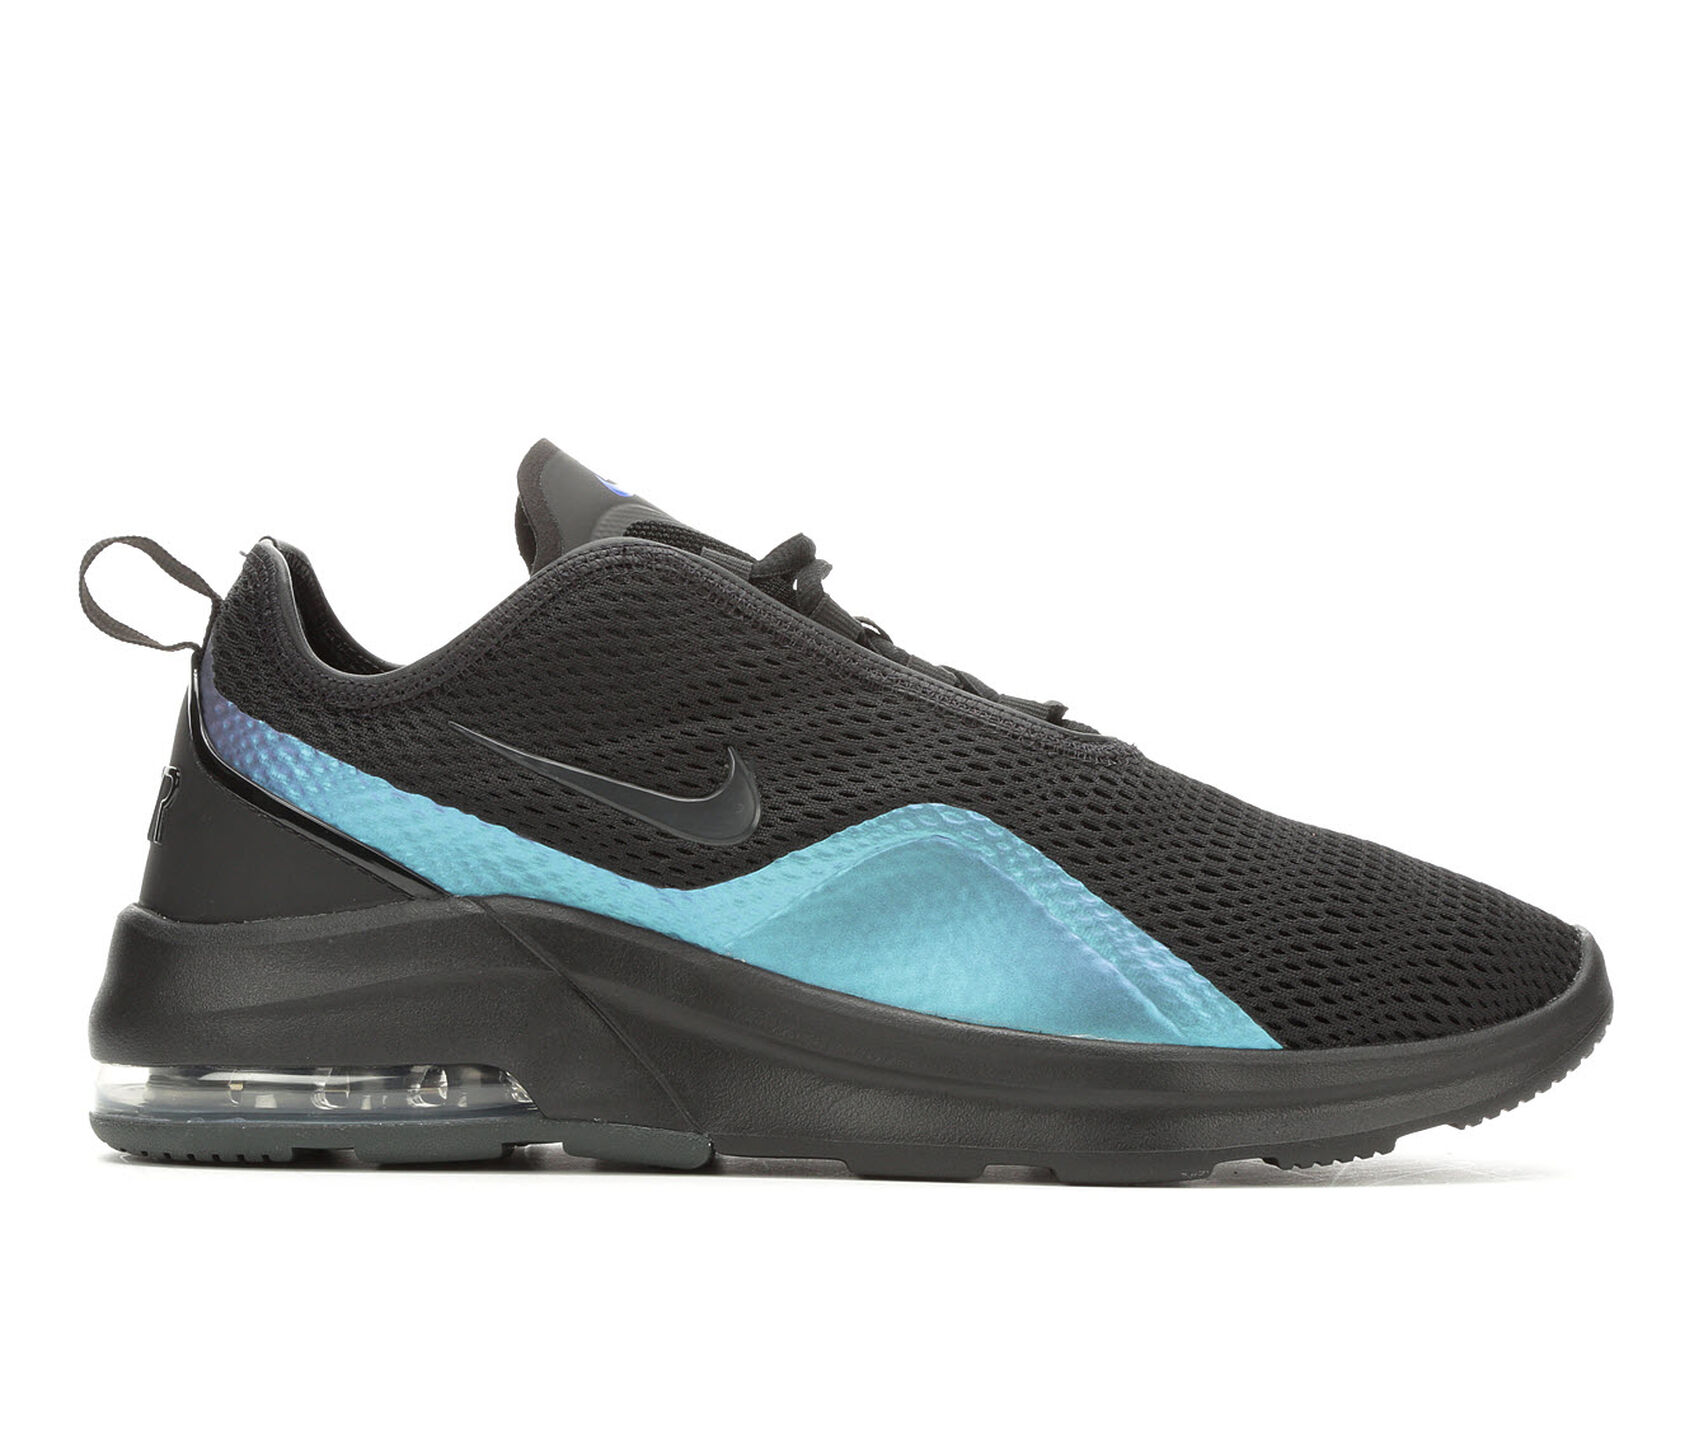 online store 48052 77e24 Men's Nike Air Max Motion 2 Sneakers | Shoe Carnival